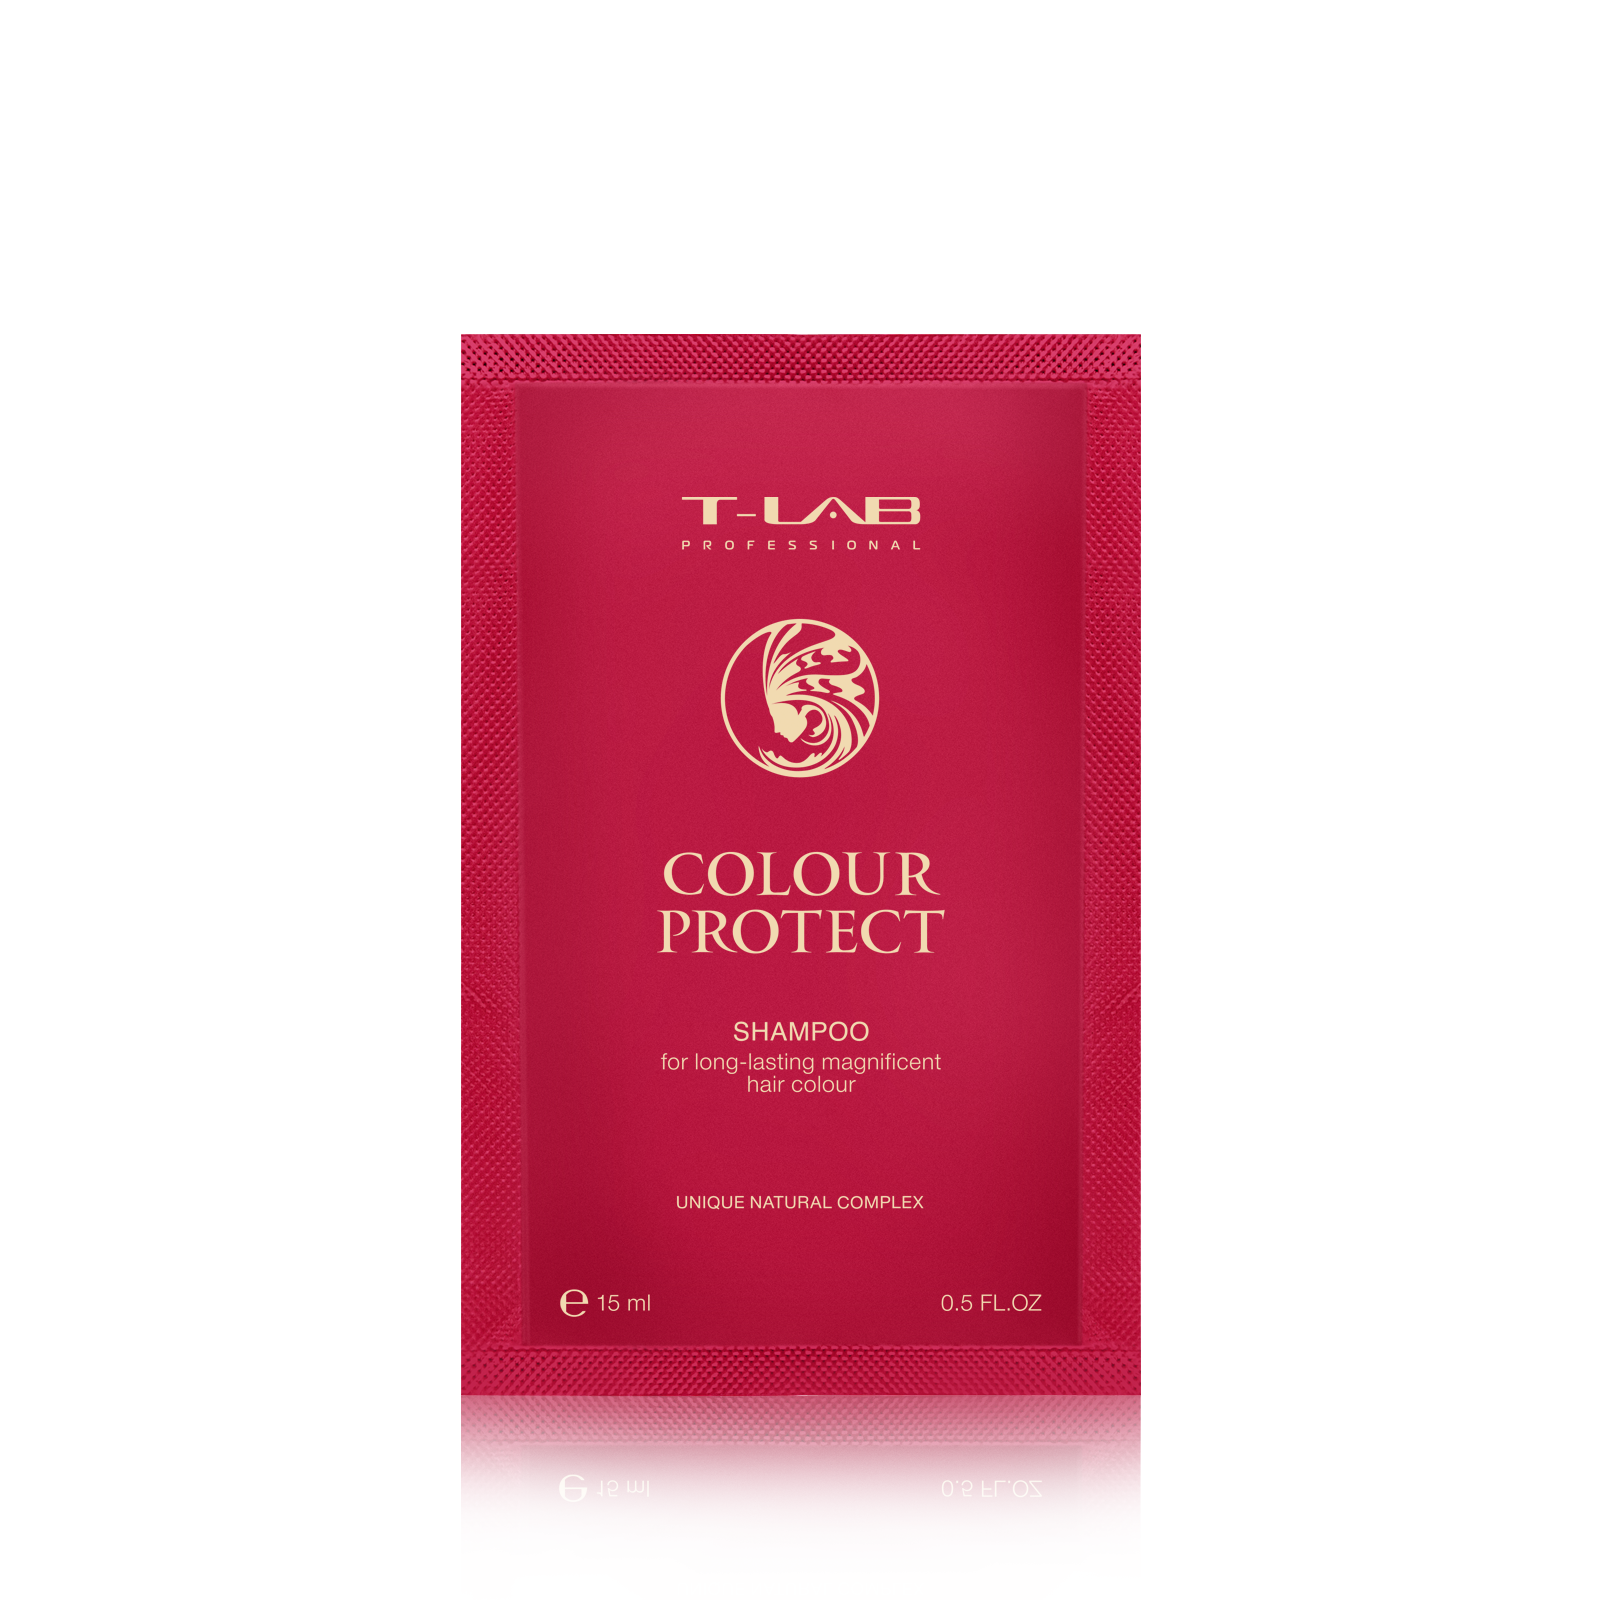 COLOUR PROTECT SHAMPOO 15 ml